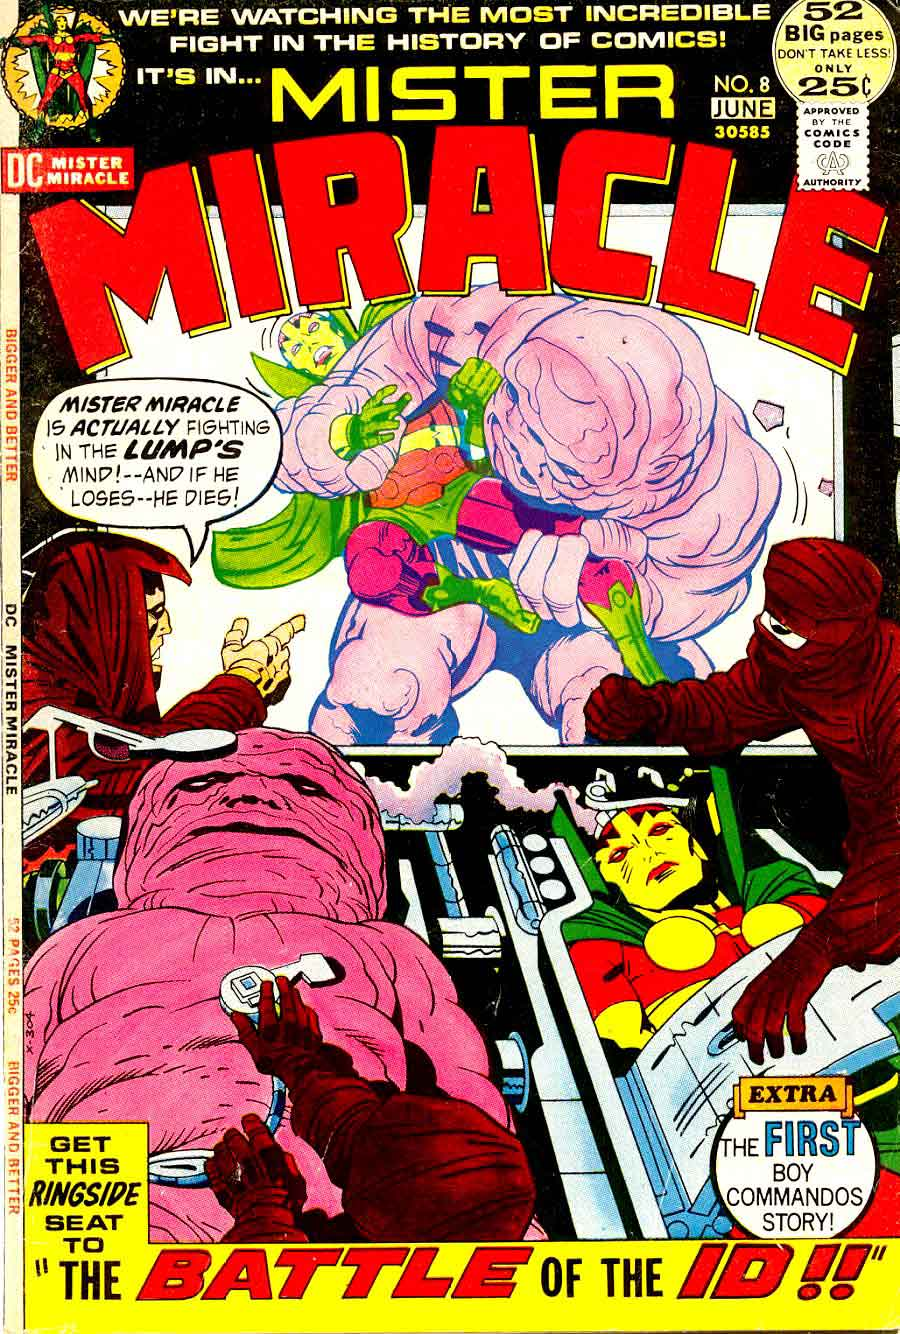 Mister Miracle v1 #8 dc 1970s bronze age comic book cover art by Jack Kirby